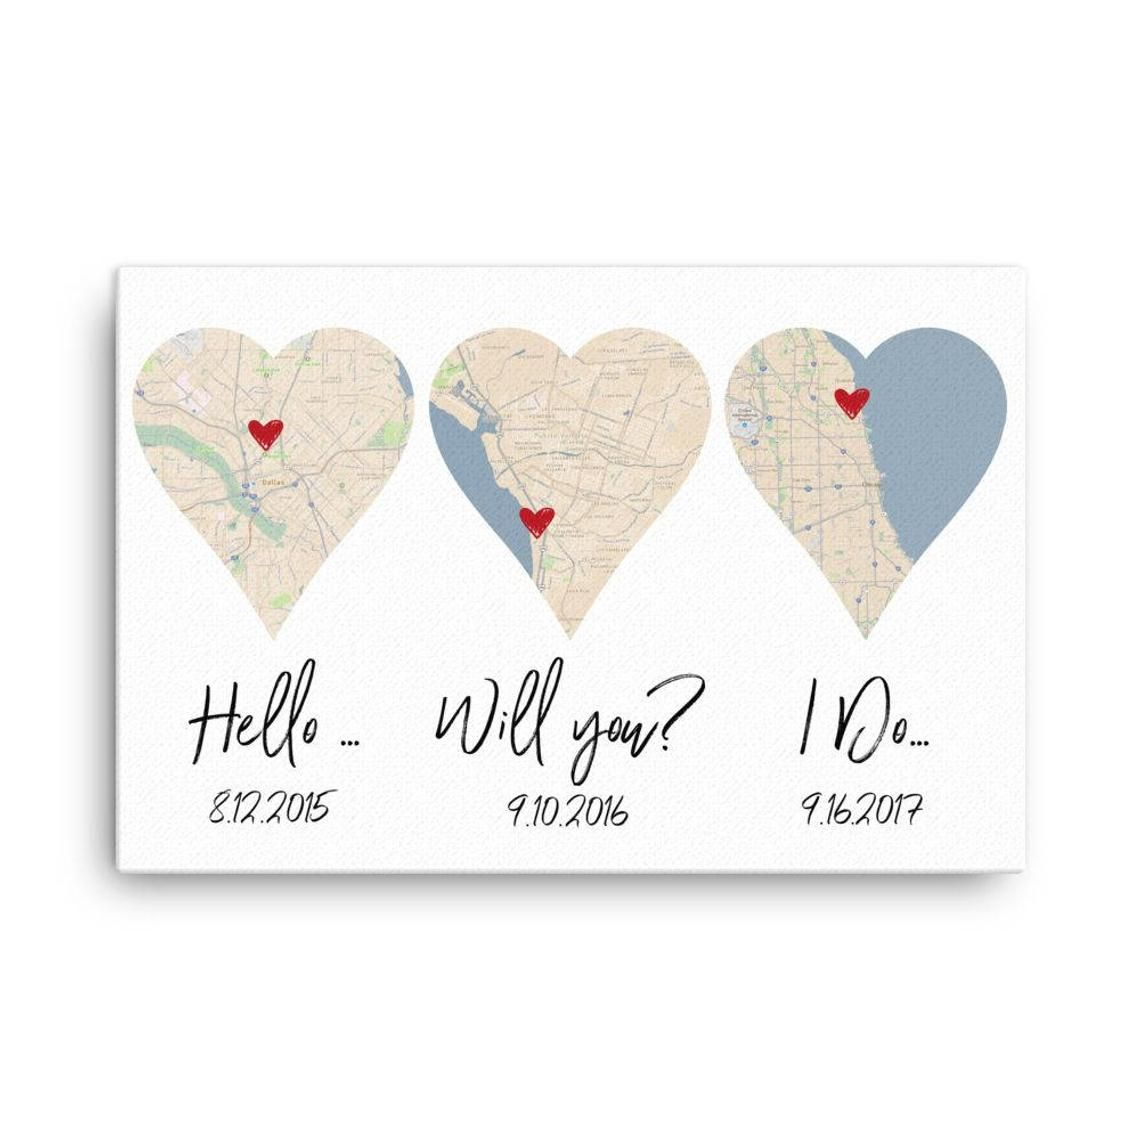 Cotton Wedding Anniversary Gift Ideas For Her: Cotton Anniversary Gift For Wife, For Her, For Girlfriend